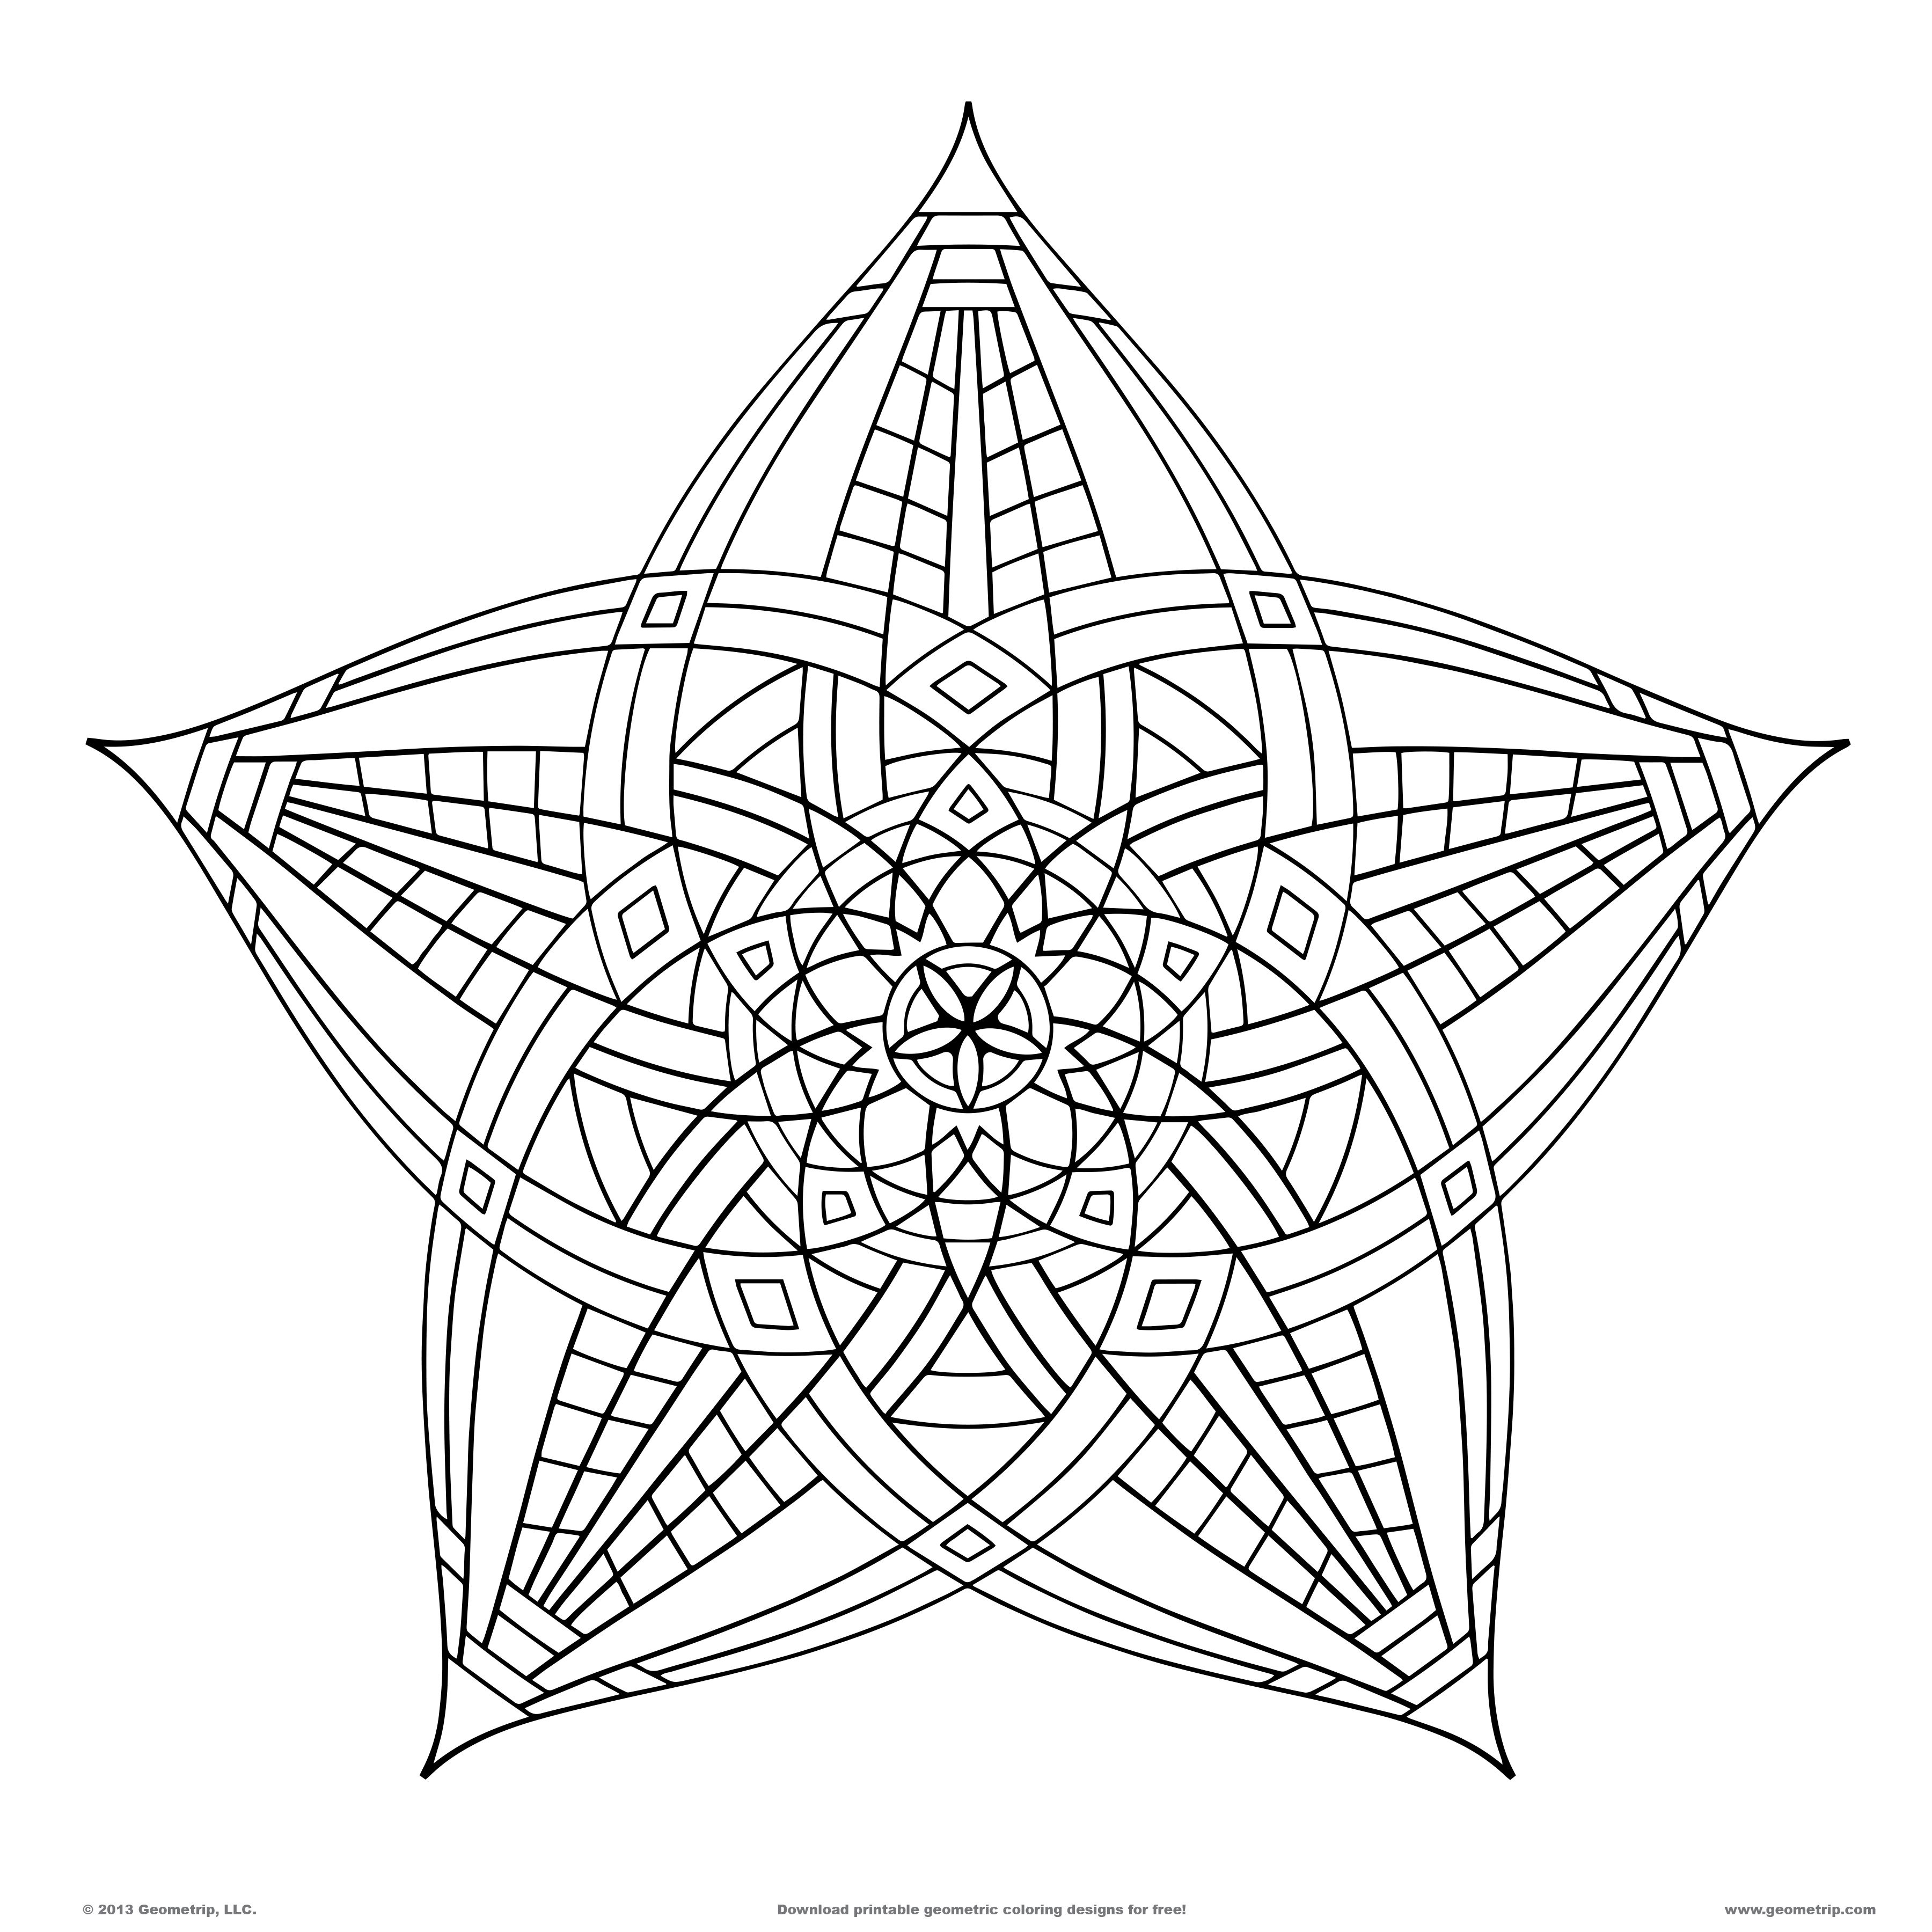 Pin By Christine's Creations On Coloring Adult / Mandala